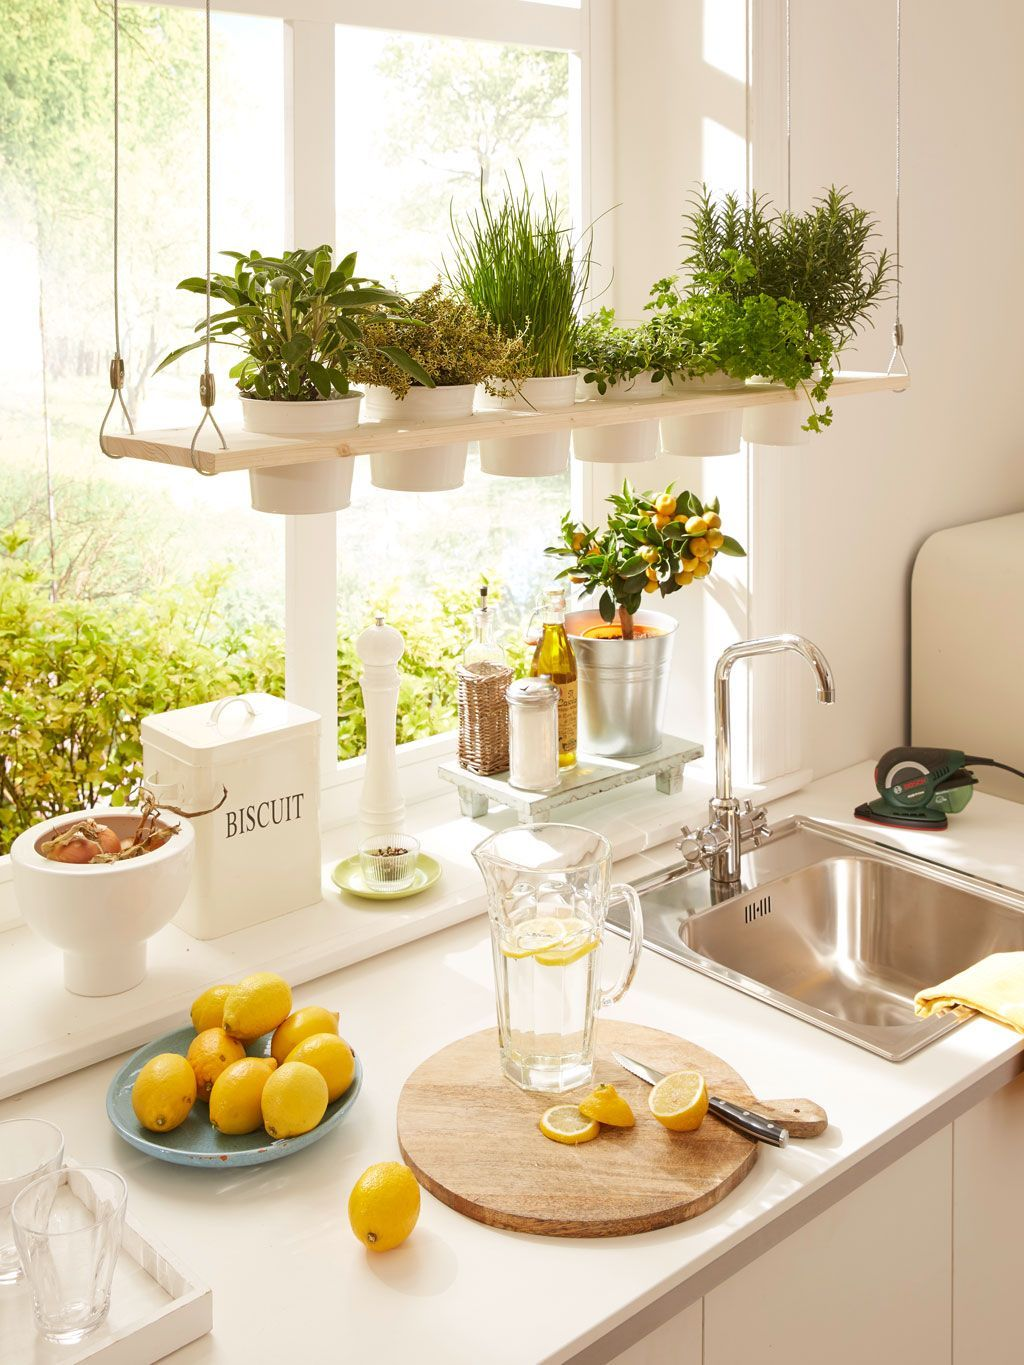 Creative Ways To Add Plants To Even A Tiny Kitchen Tinykitchens  # Muebles Cultivados